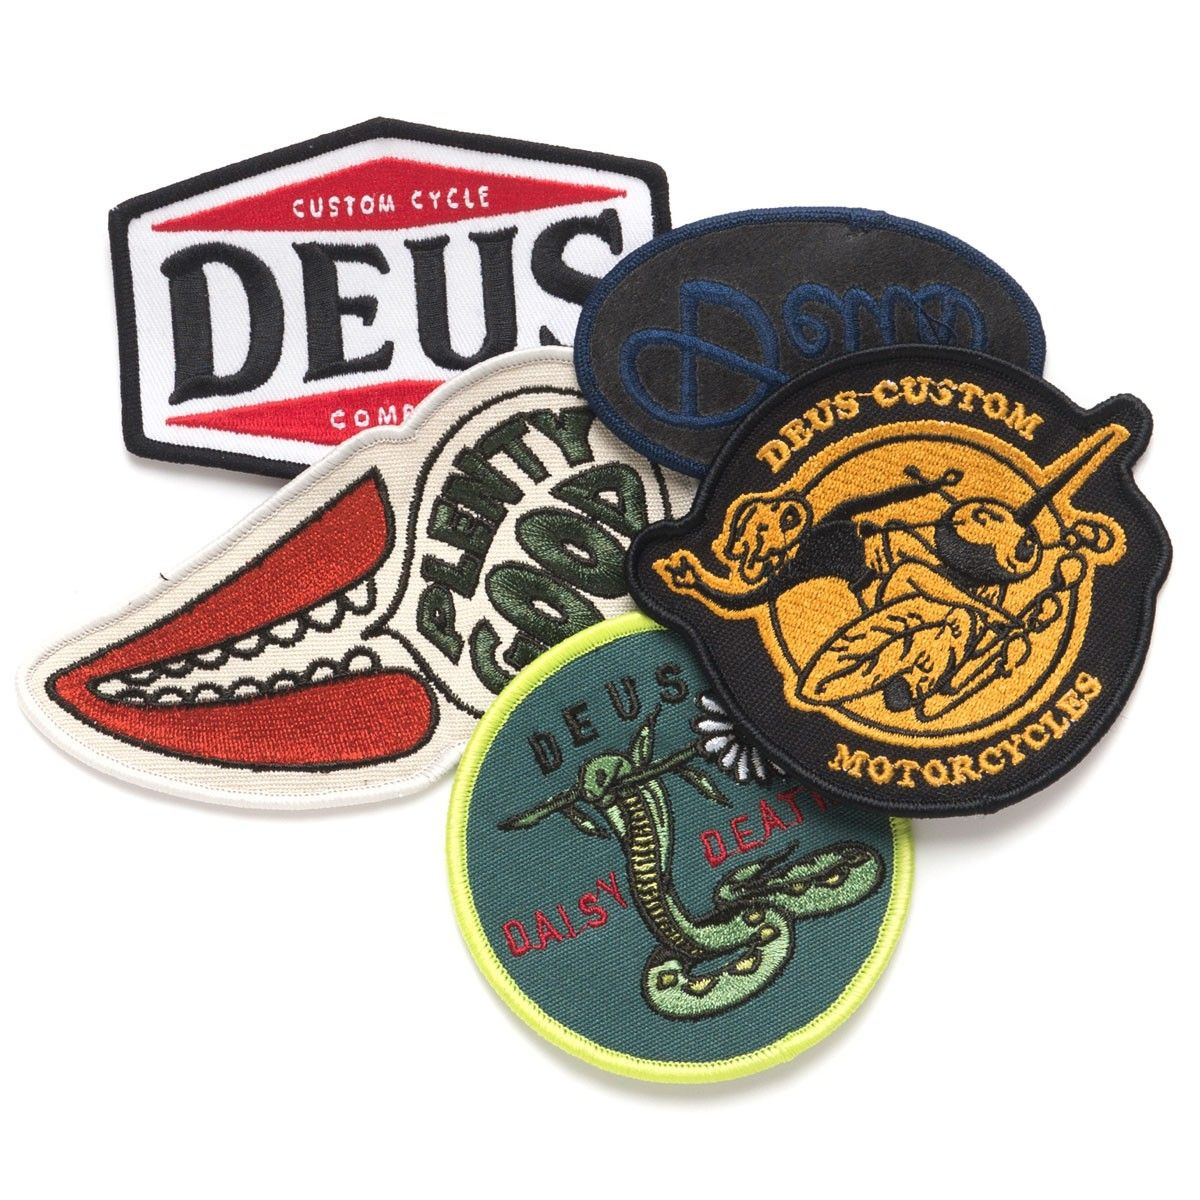 c0e210f0 Deus ex machina patch pack | LOVE BOAT DETAILS FASHION SNOOPS | Deus ...